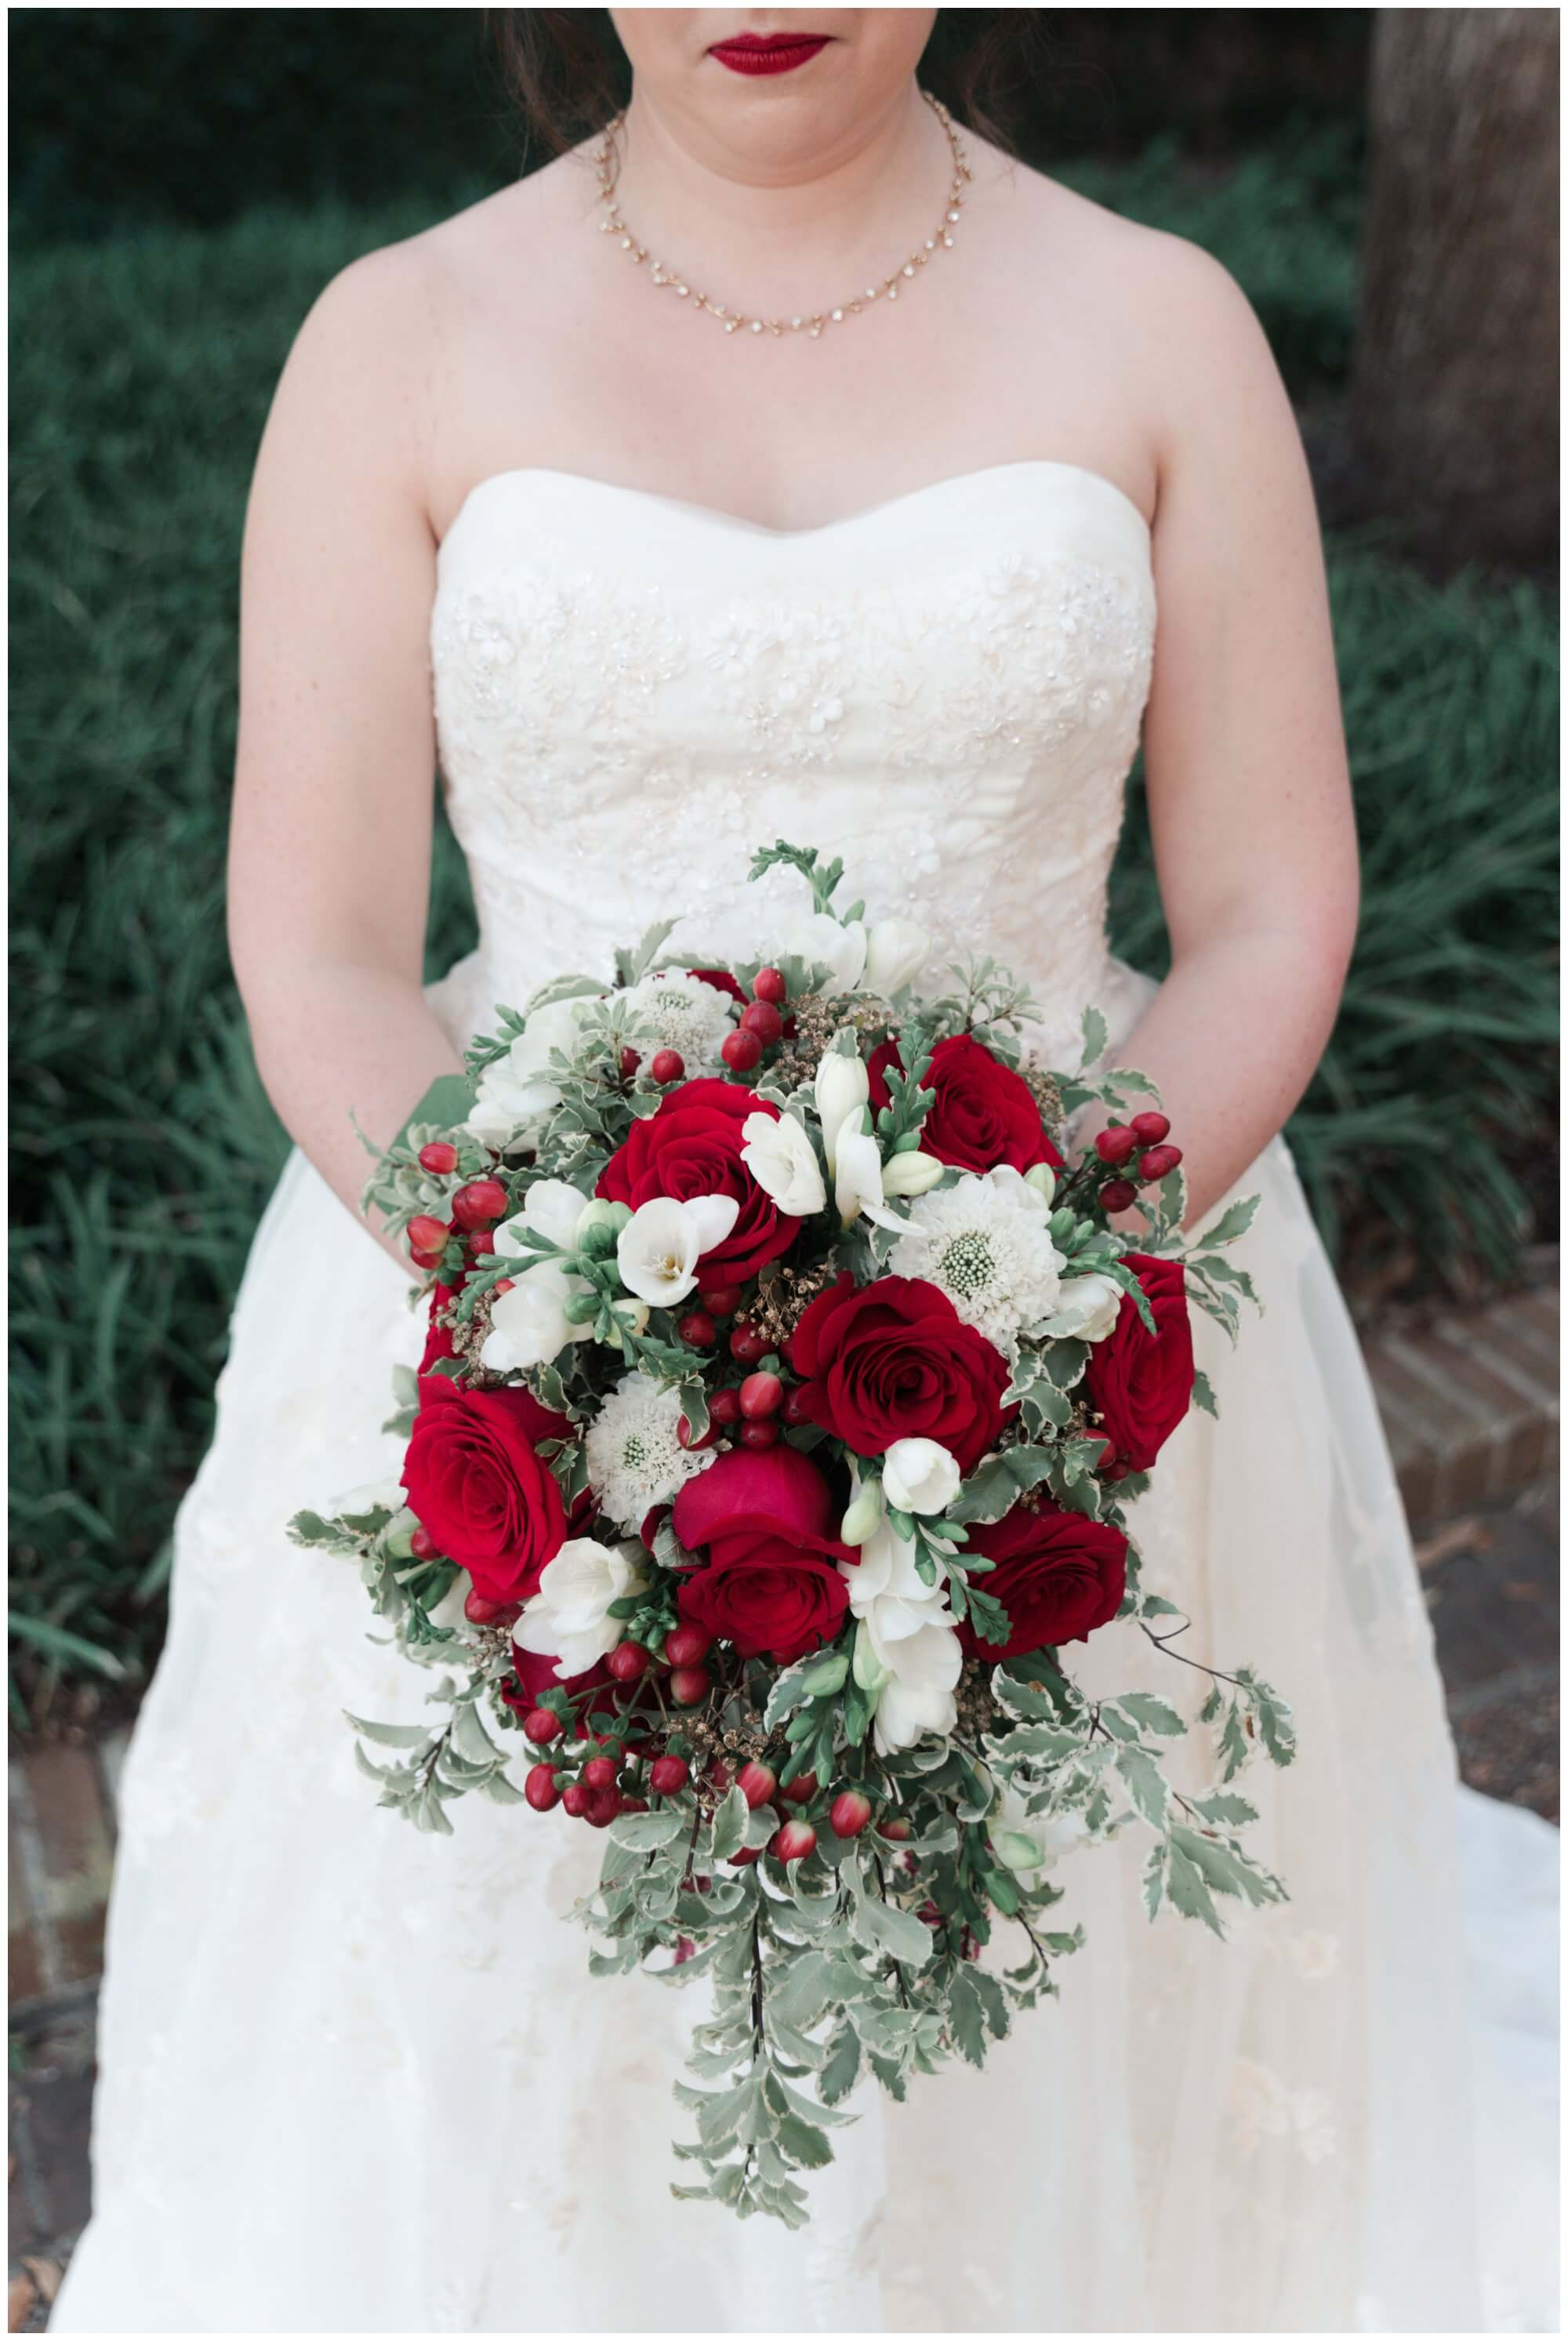 wedding flowers at Rice University in Houston Texas by Swish and Click Photography